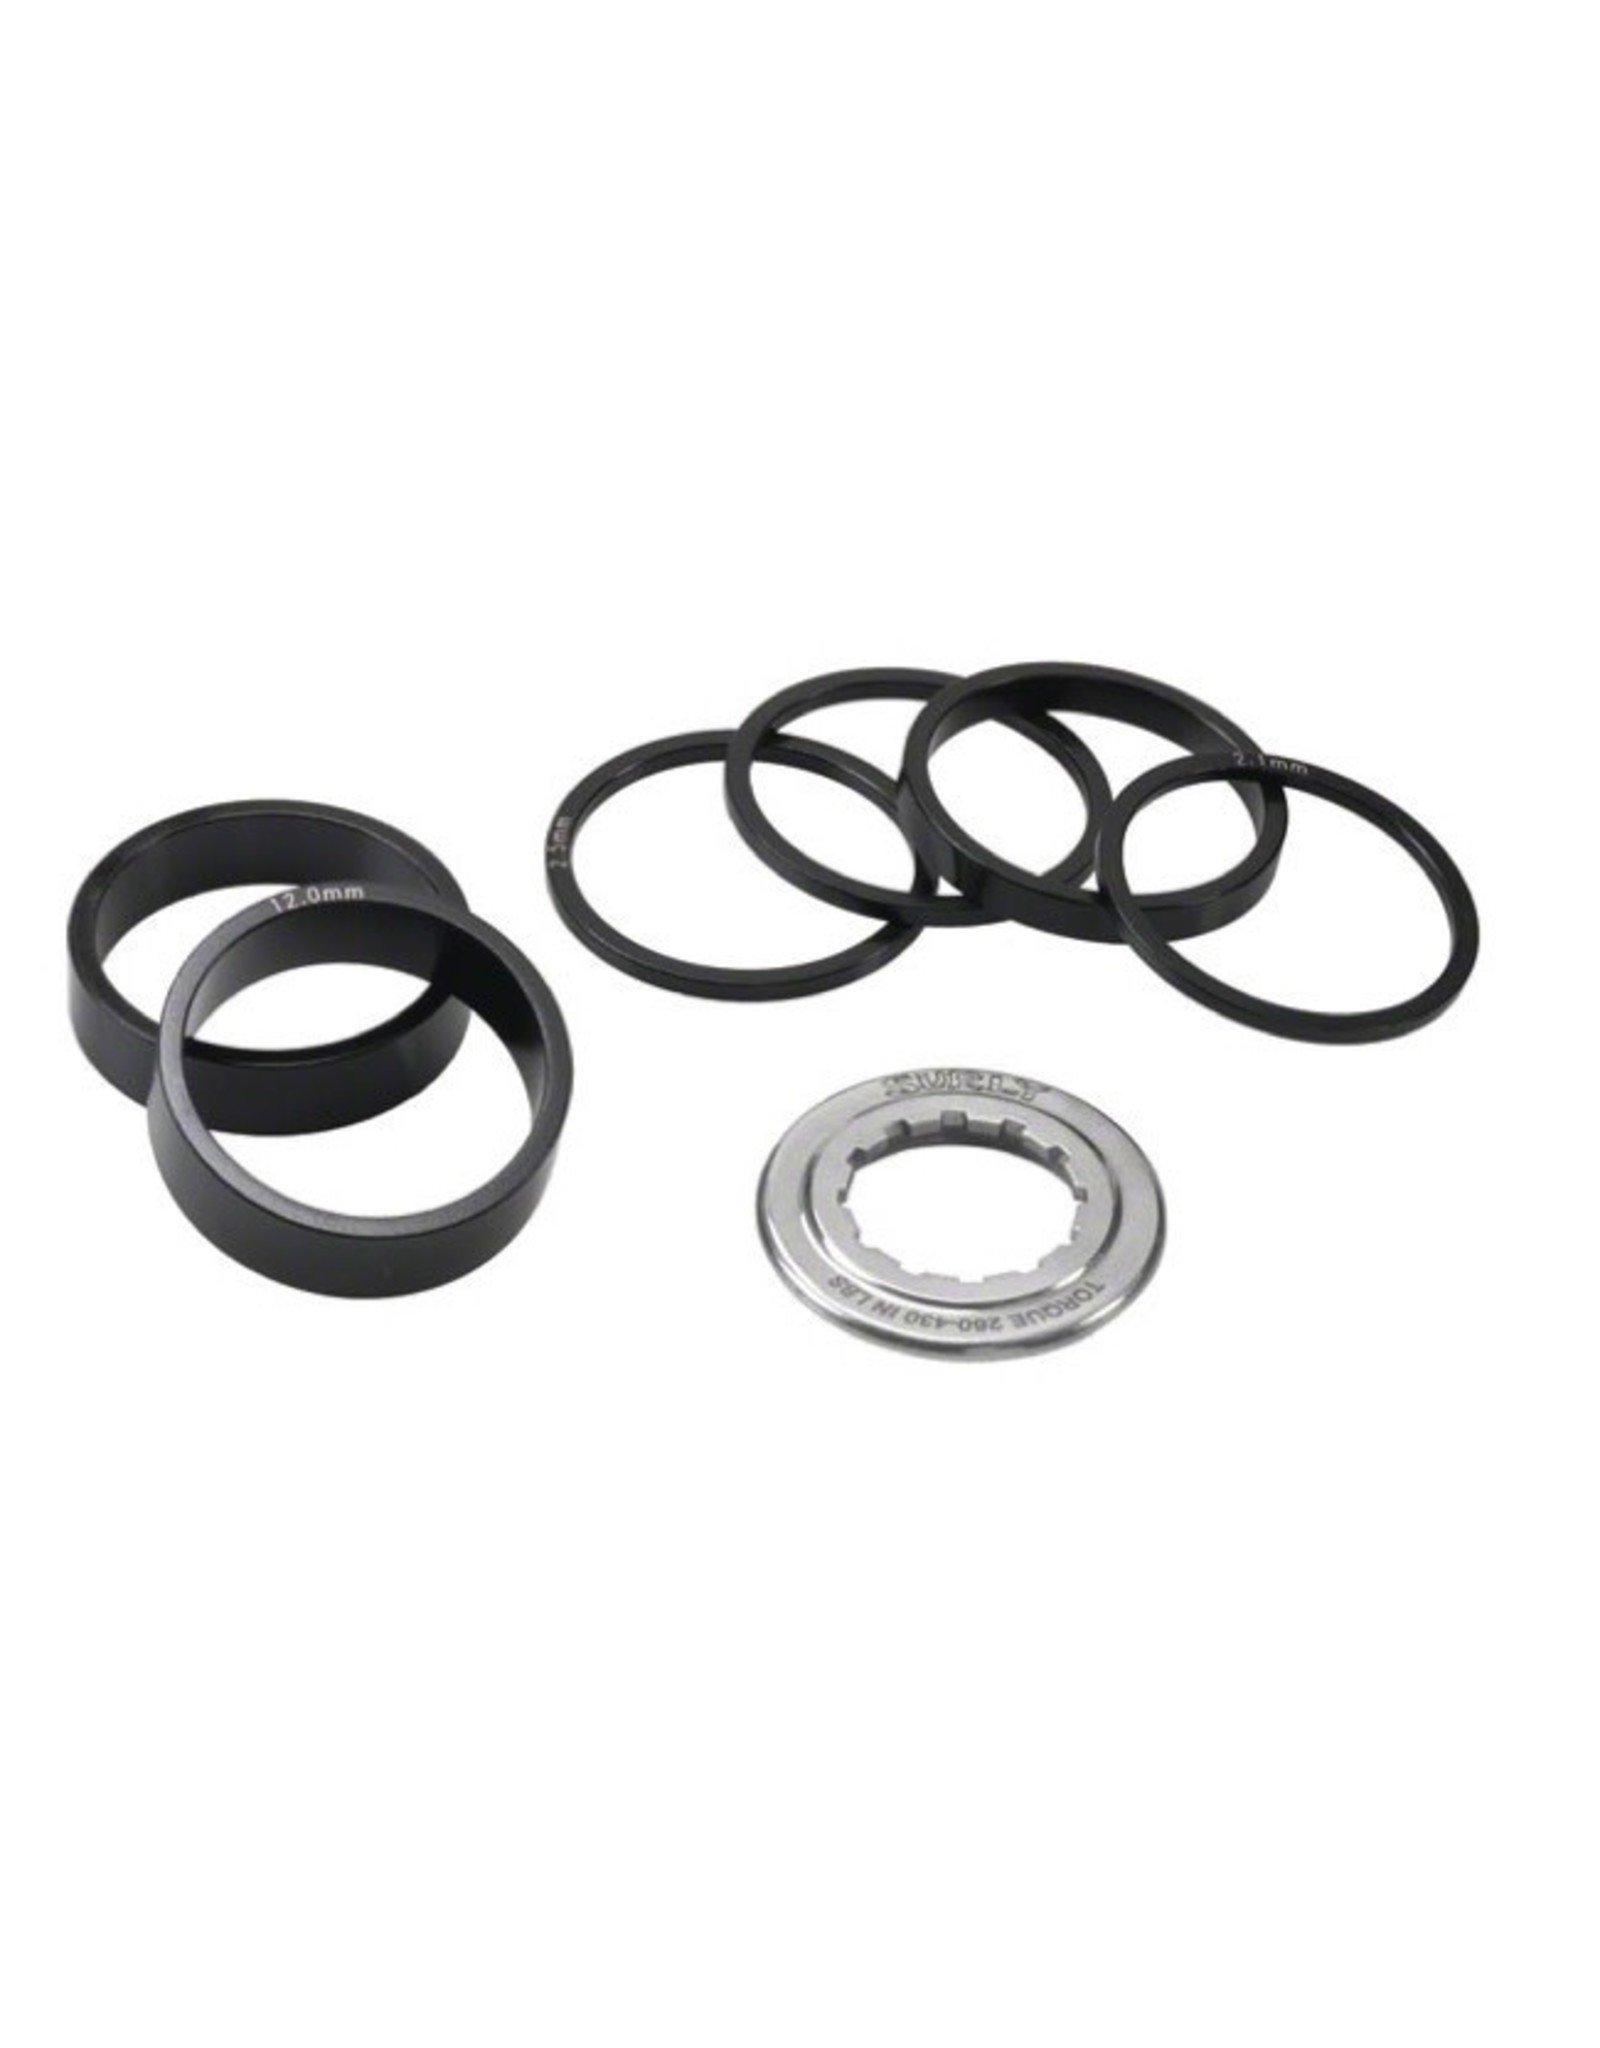 Surly Surly Single-Speed Kit, Spacers and Lockring